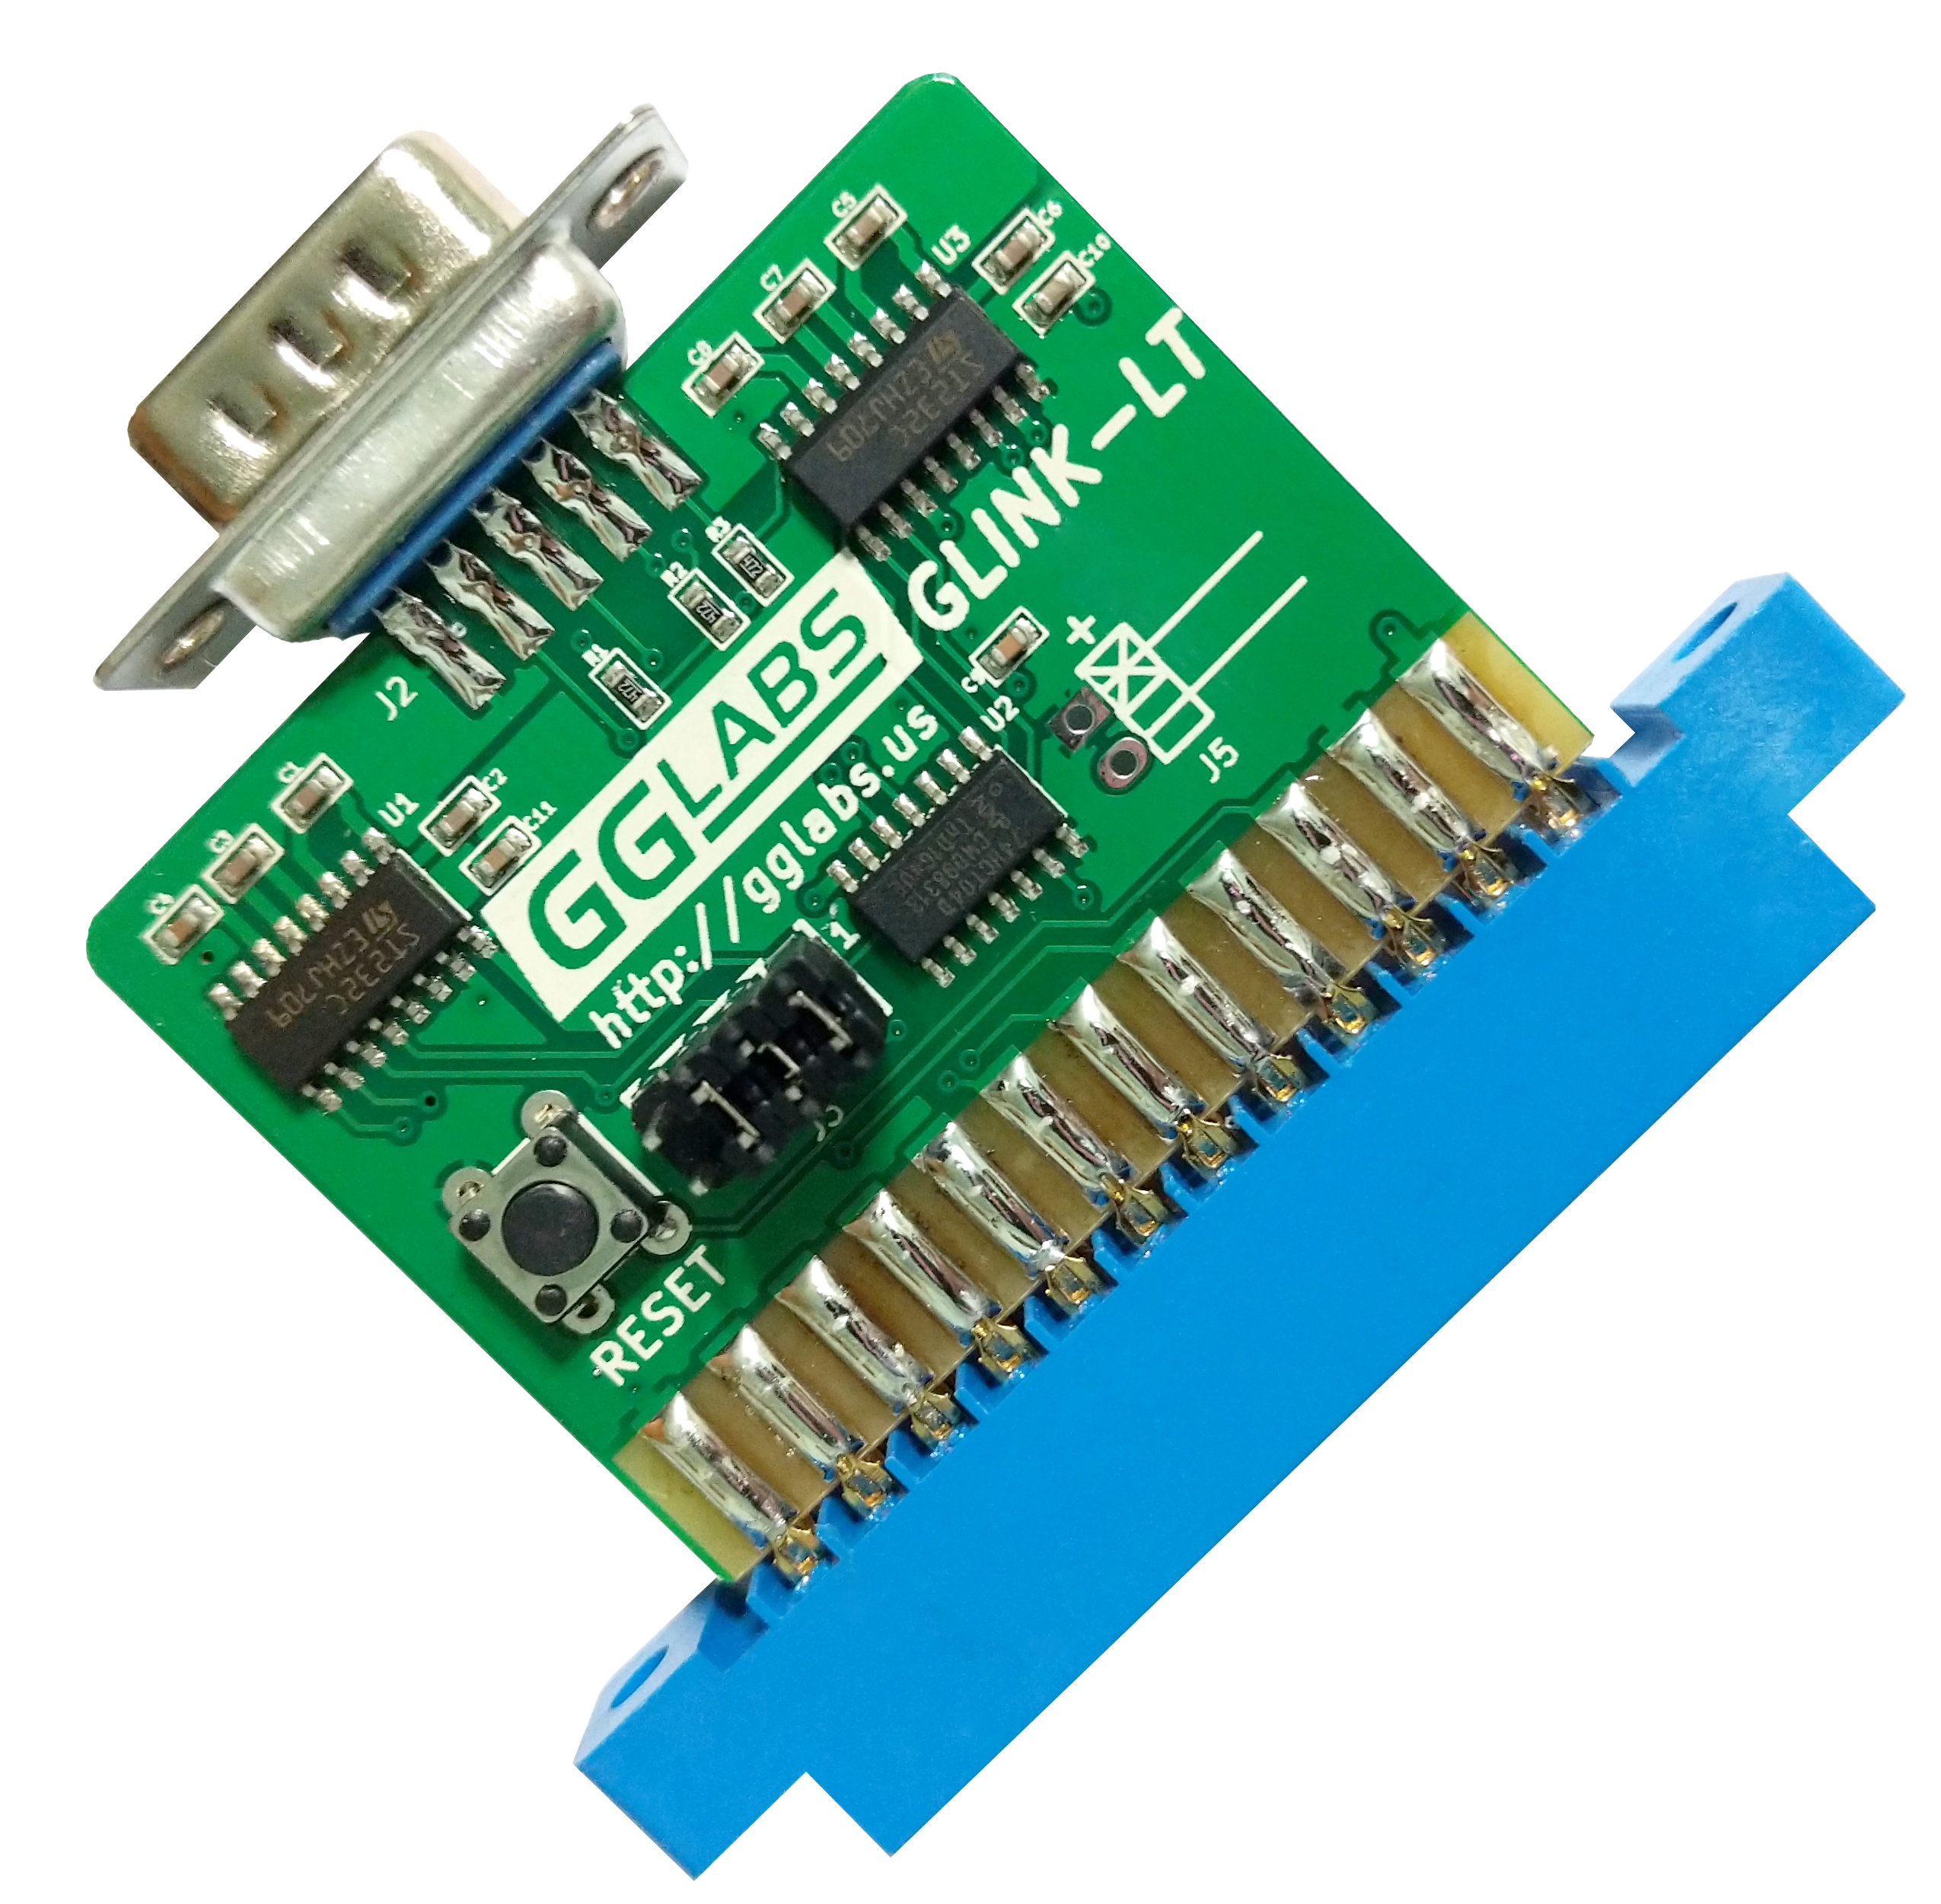 gglabs us | Open Source Electronics from Silicon Valley